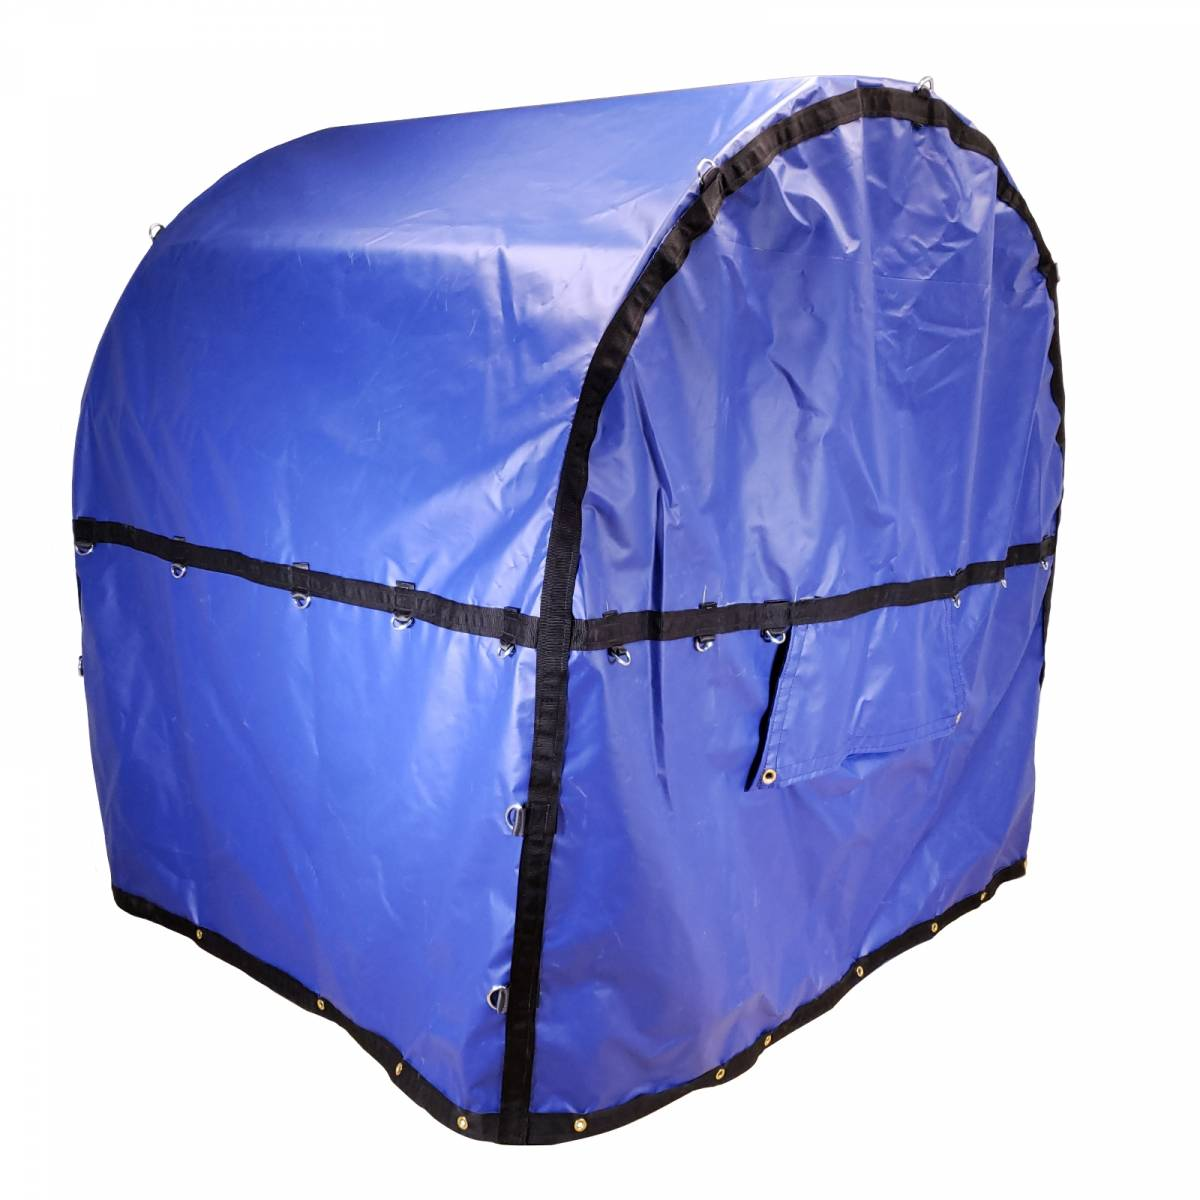 Coil Bag Truck Tarp With Chain Holes For Rolled Steel On